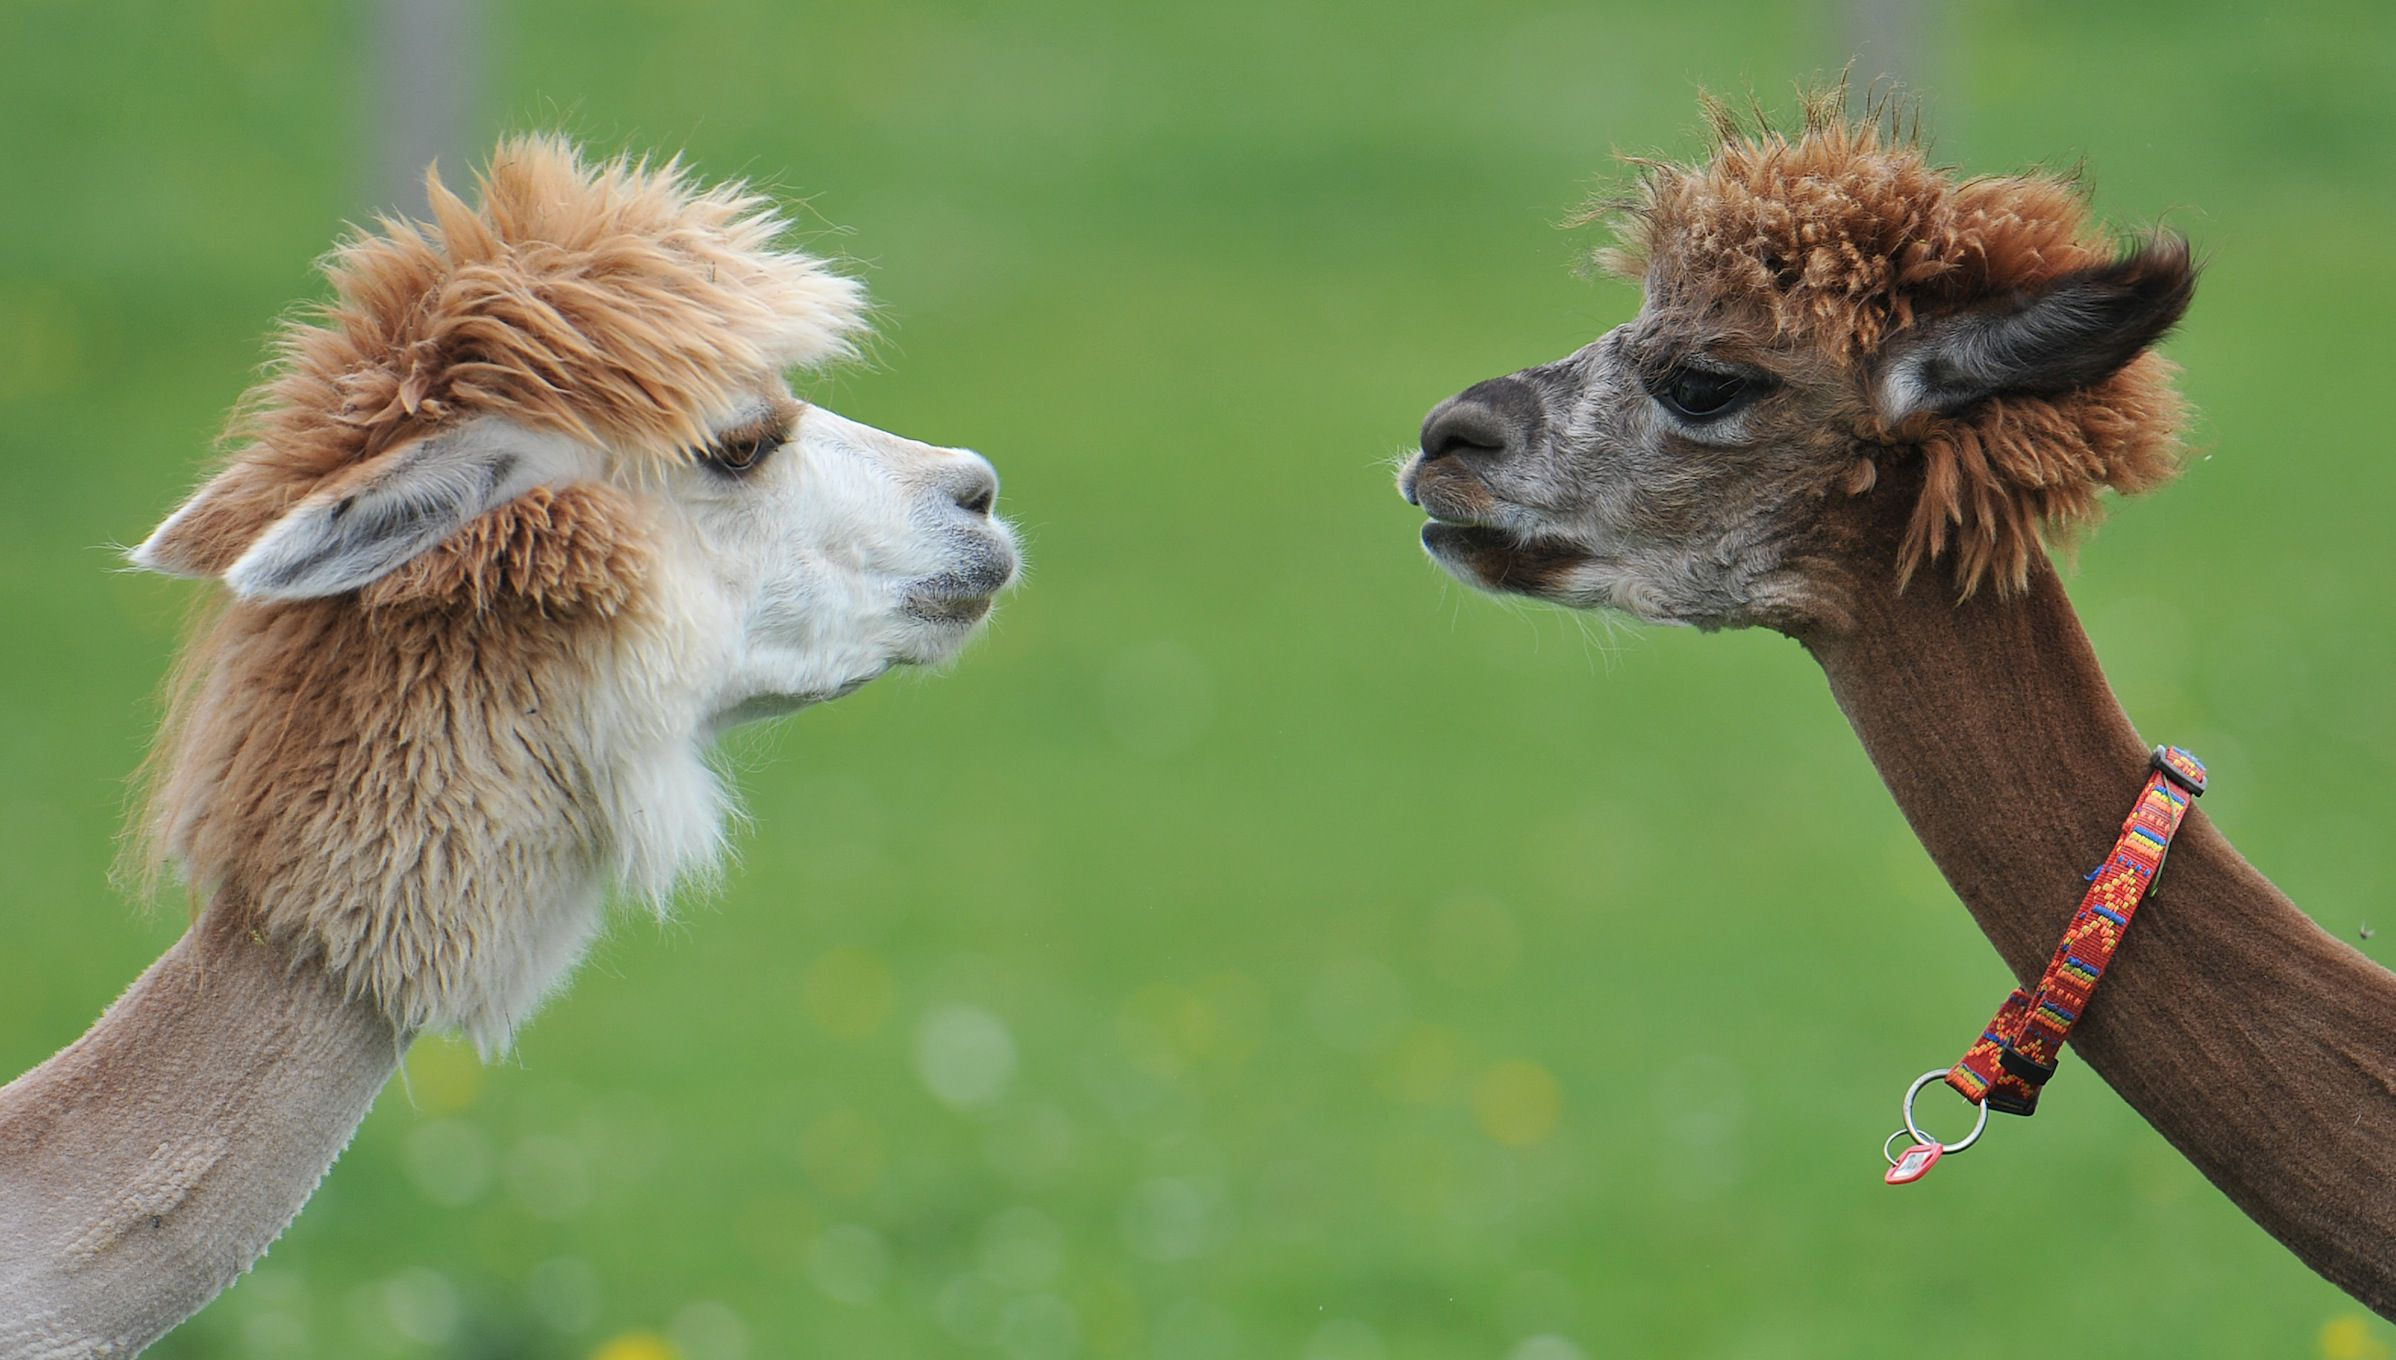 Two freshly shaved alpacas stand on a green field at Alpaca-Land farm in Goeming in the Austrian province of Salzburg, Sunday April, 29, 2012. The annual shearing is done in the spring to make the animals more comfortable for the summer months. This will give them plenty of time to grow a thick new coat before winter. (AP Photo/Kerstin Joensson)